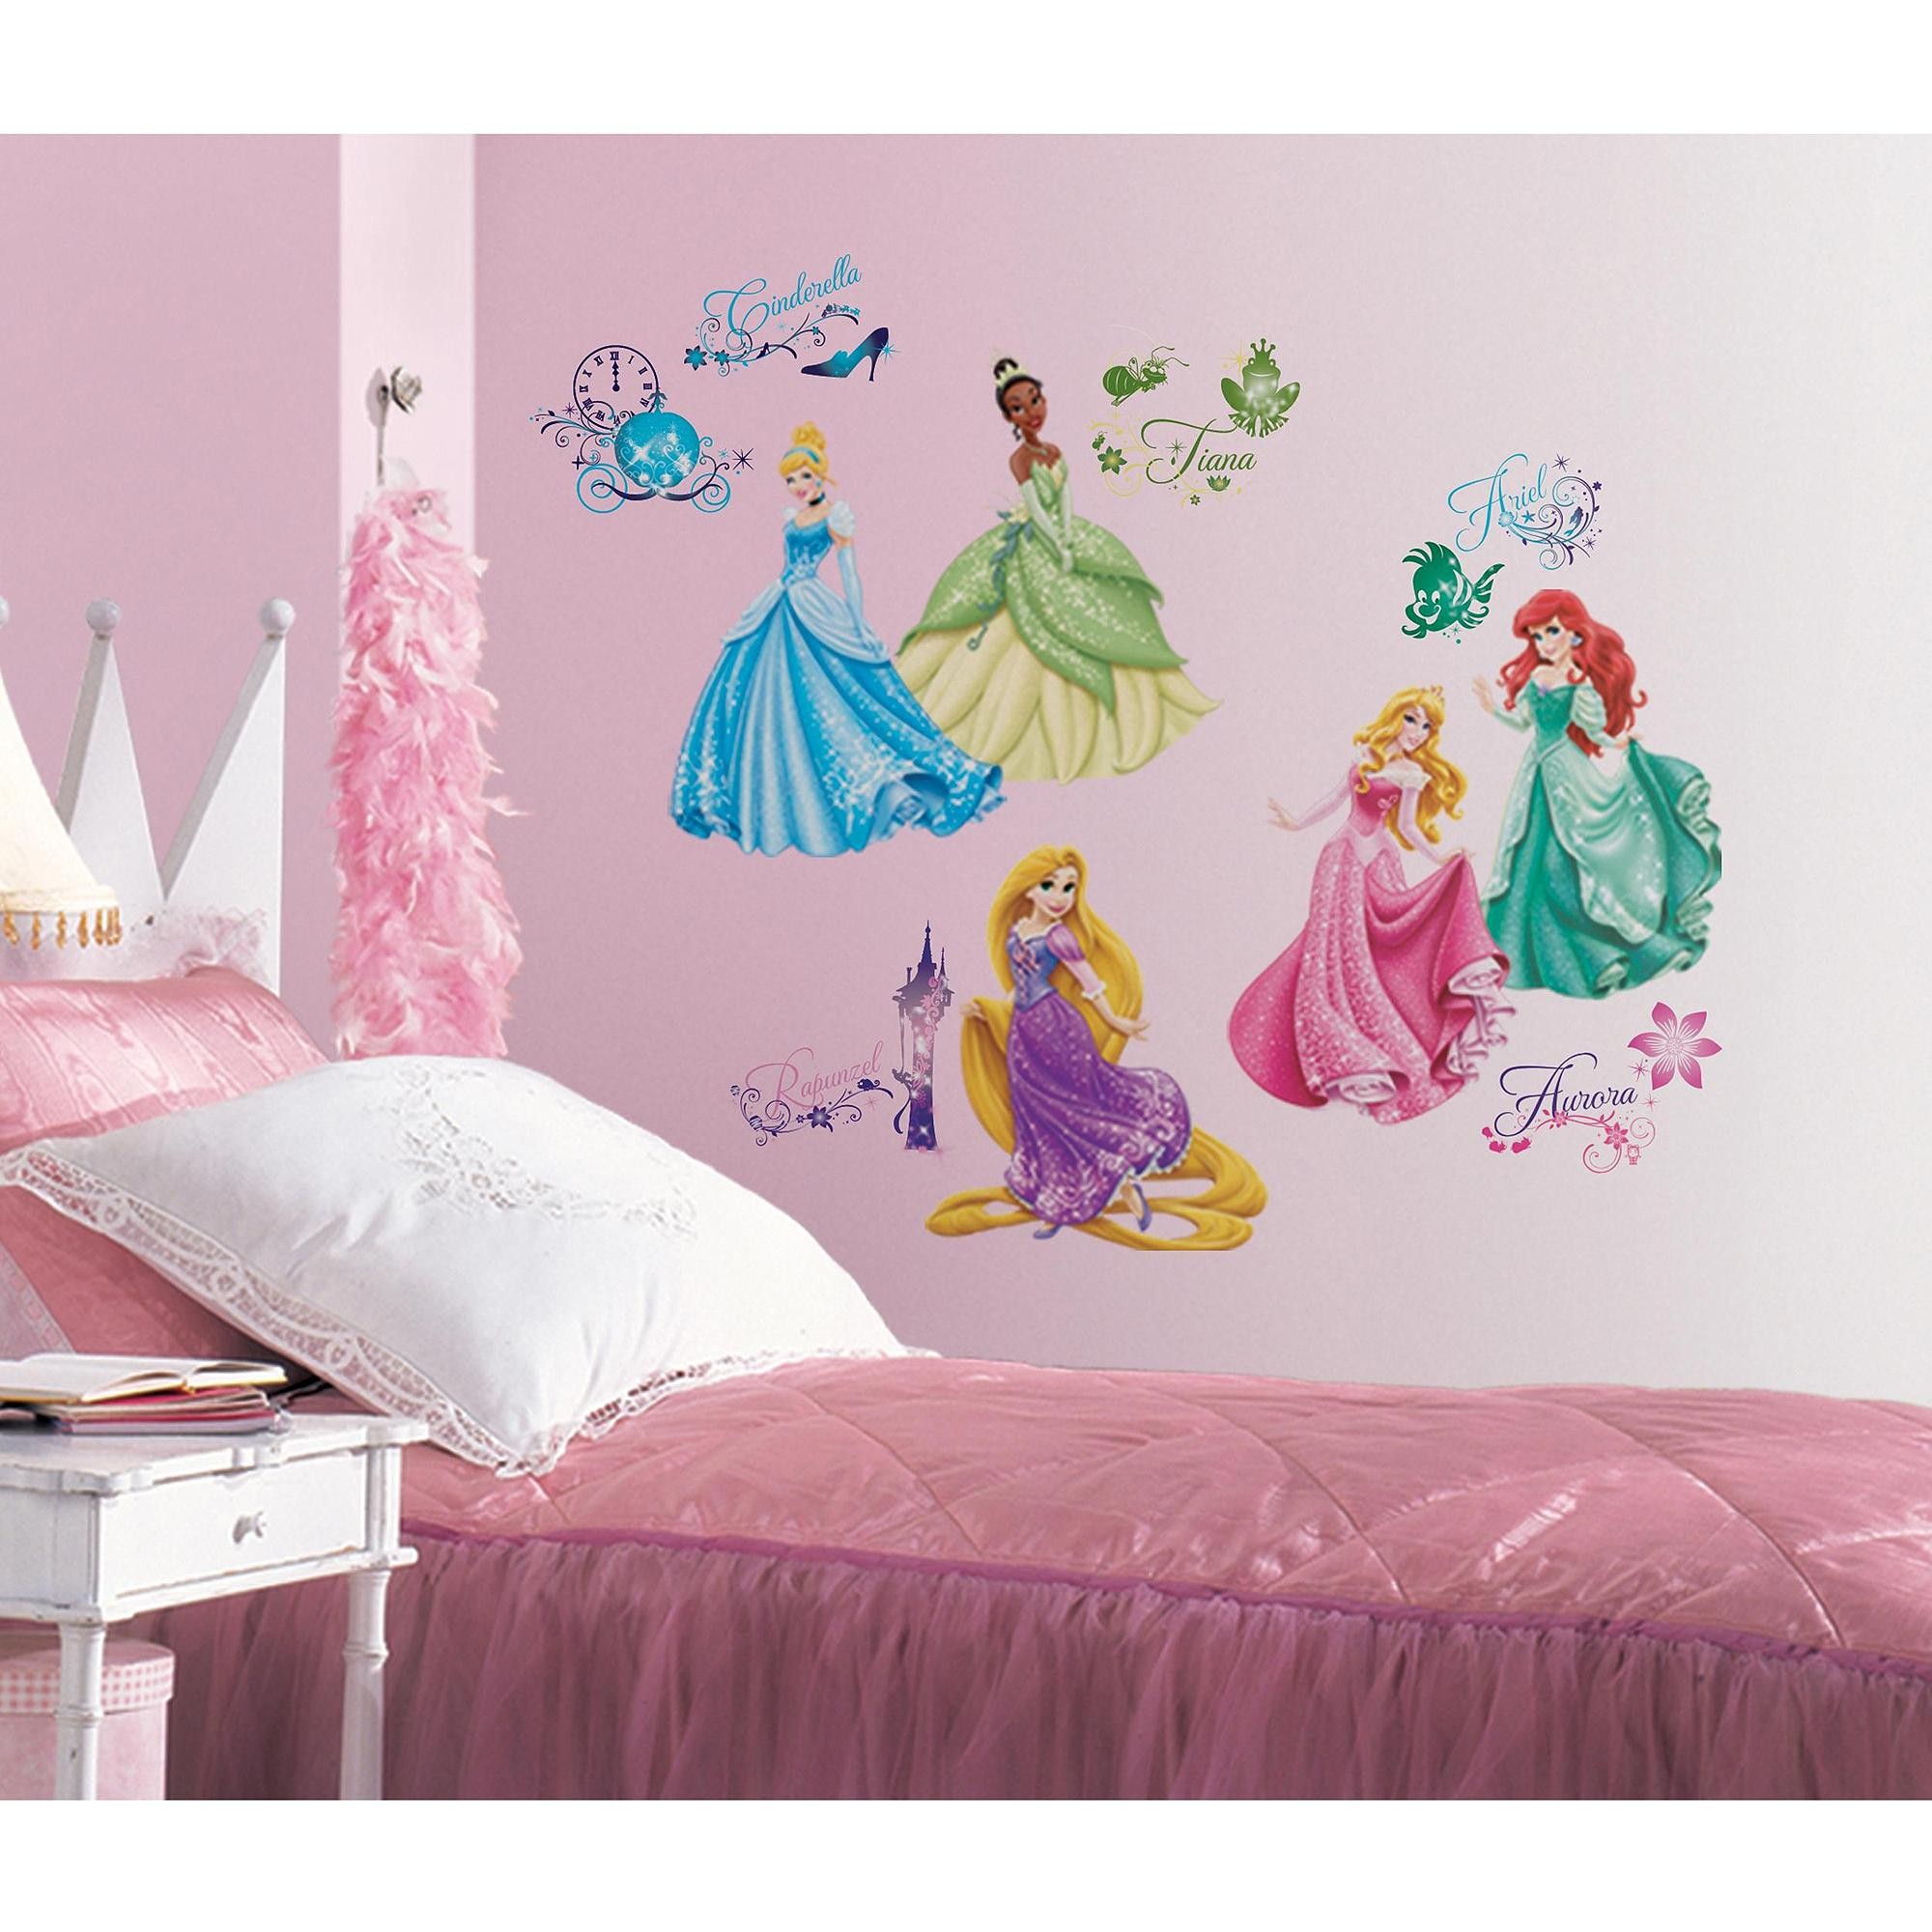 Kidsroomstogo | Rooms to Go Outlet Orlando | Rooms to Go in Plano Tx